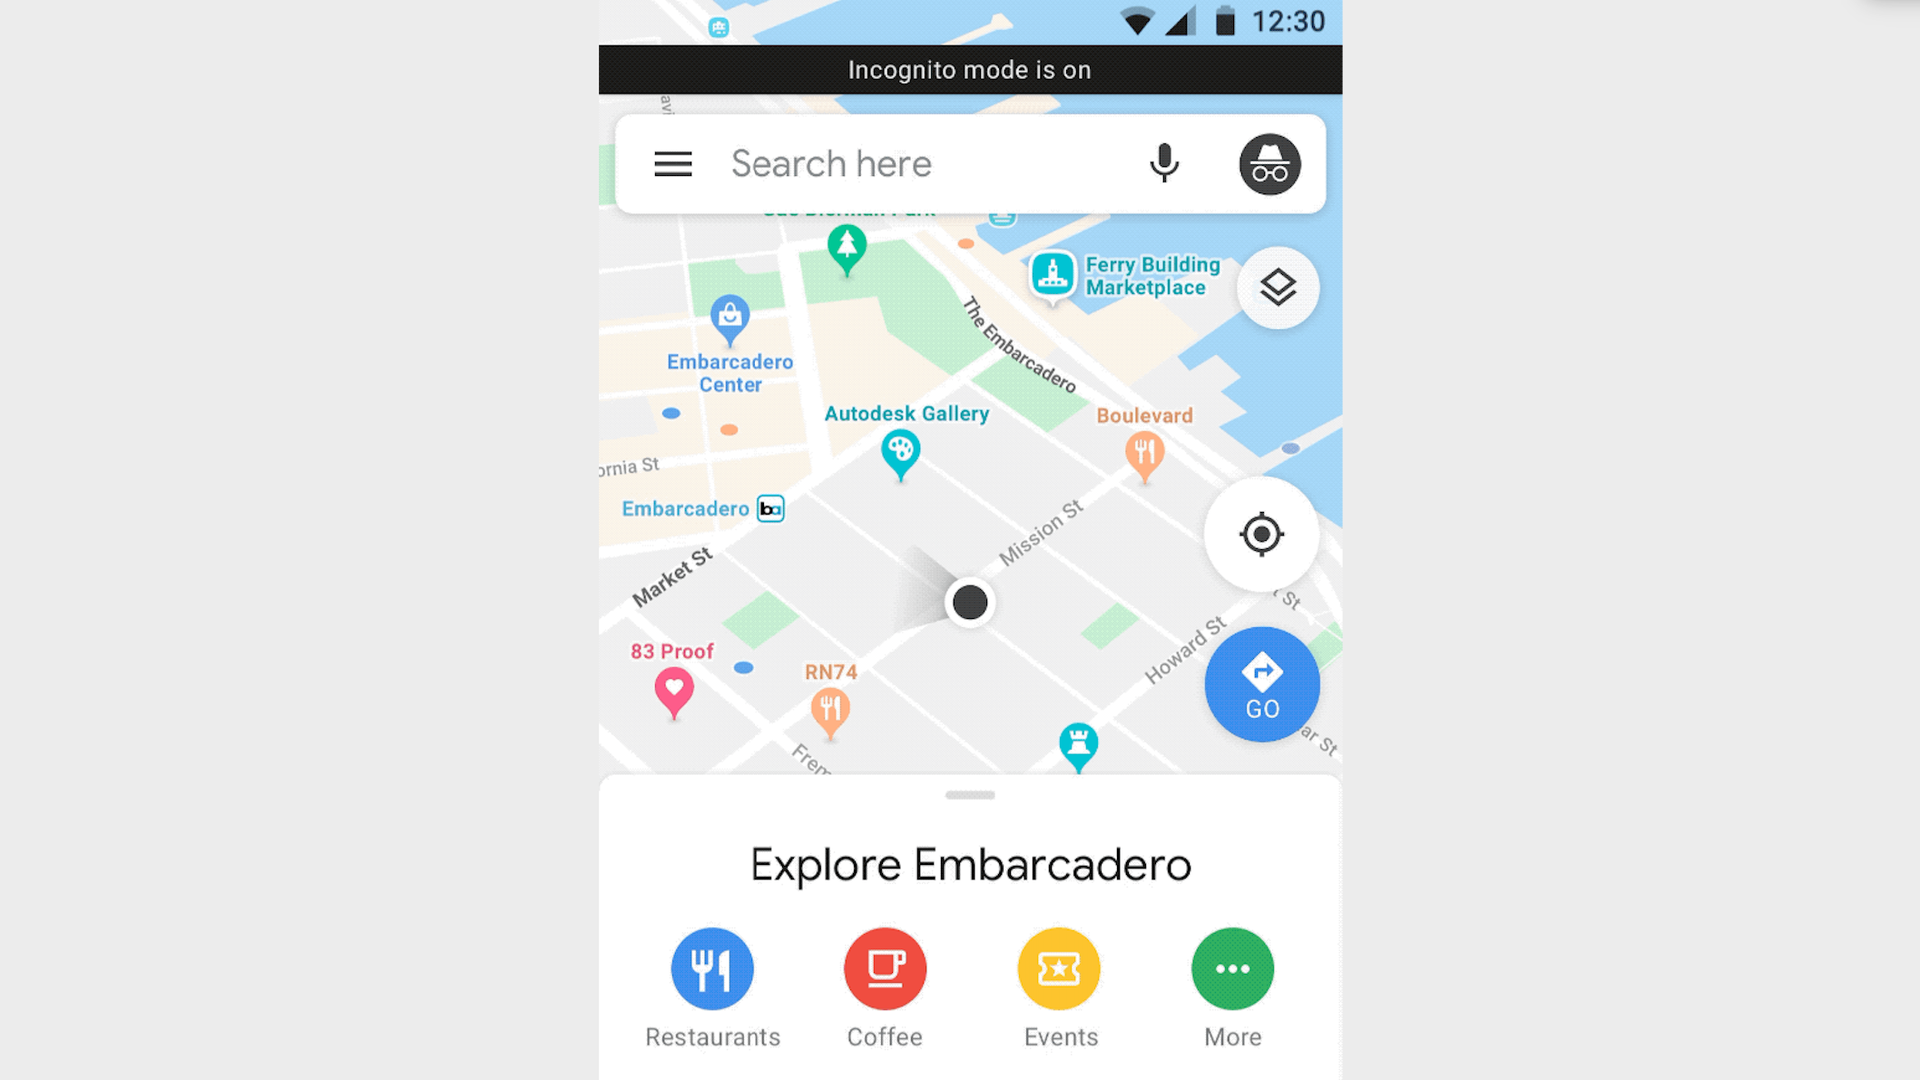 An image of Google Maps' new incognito mode